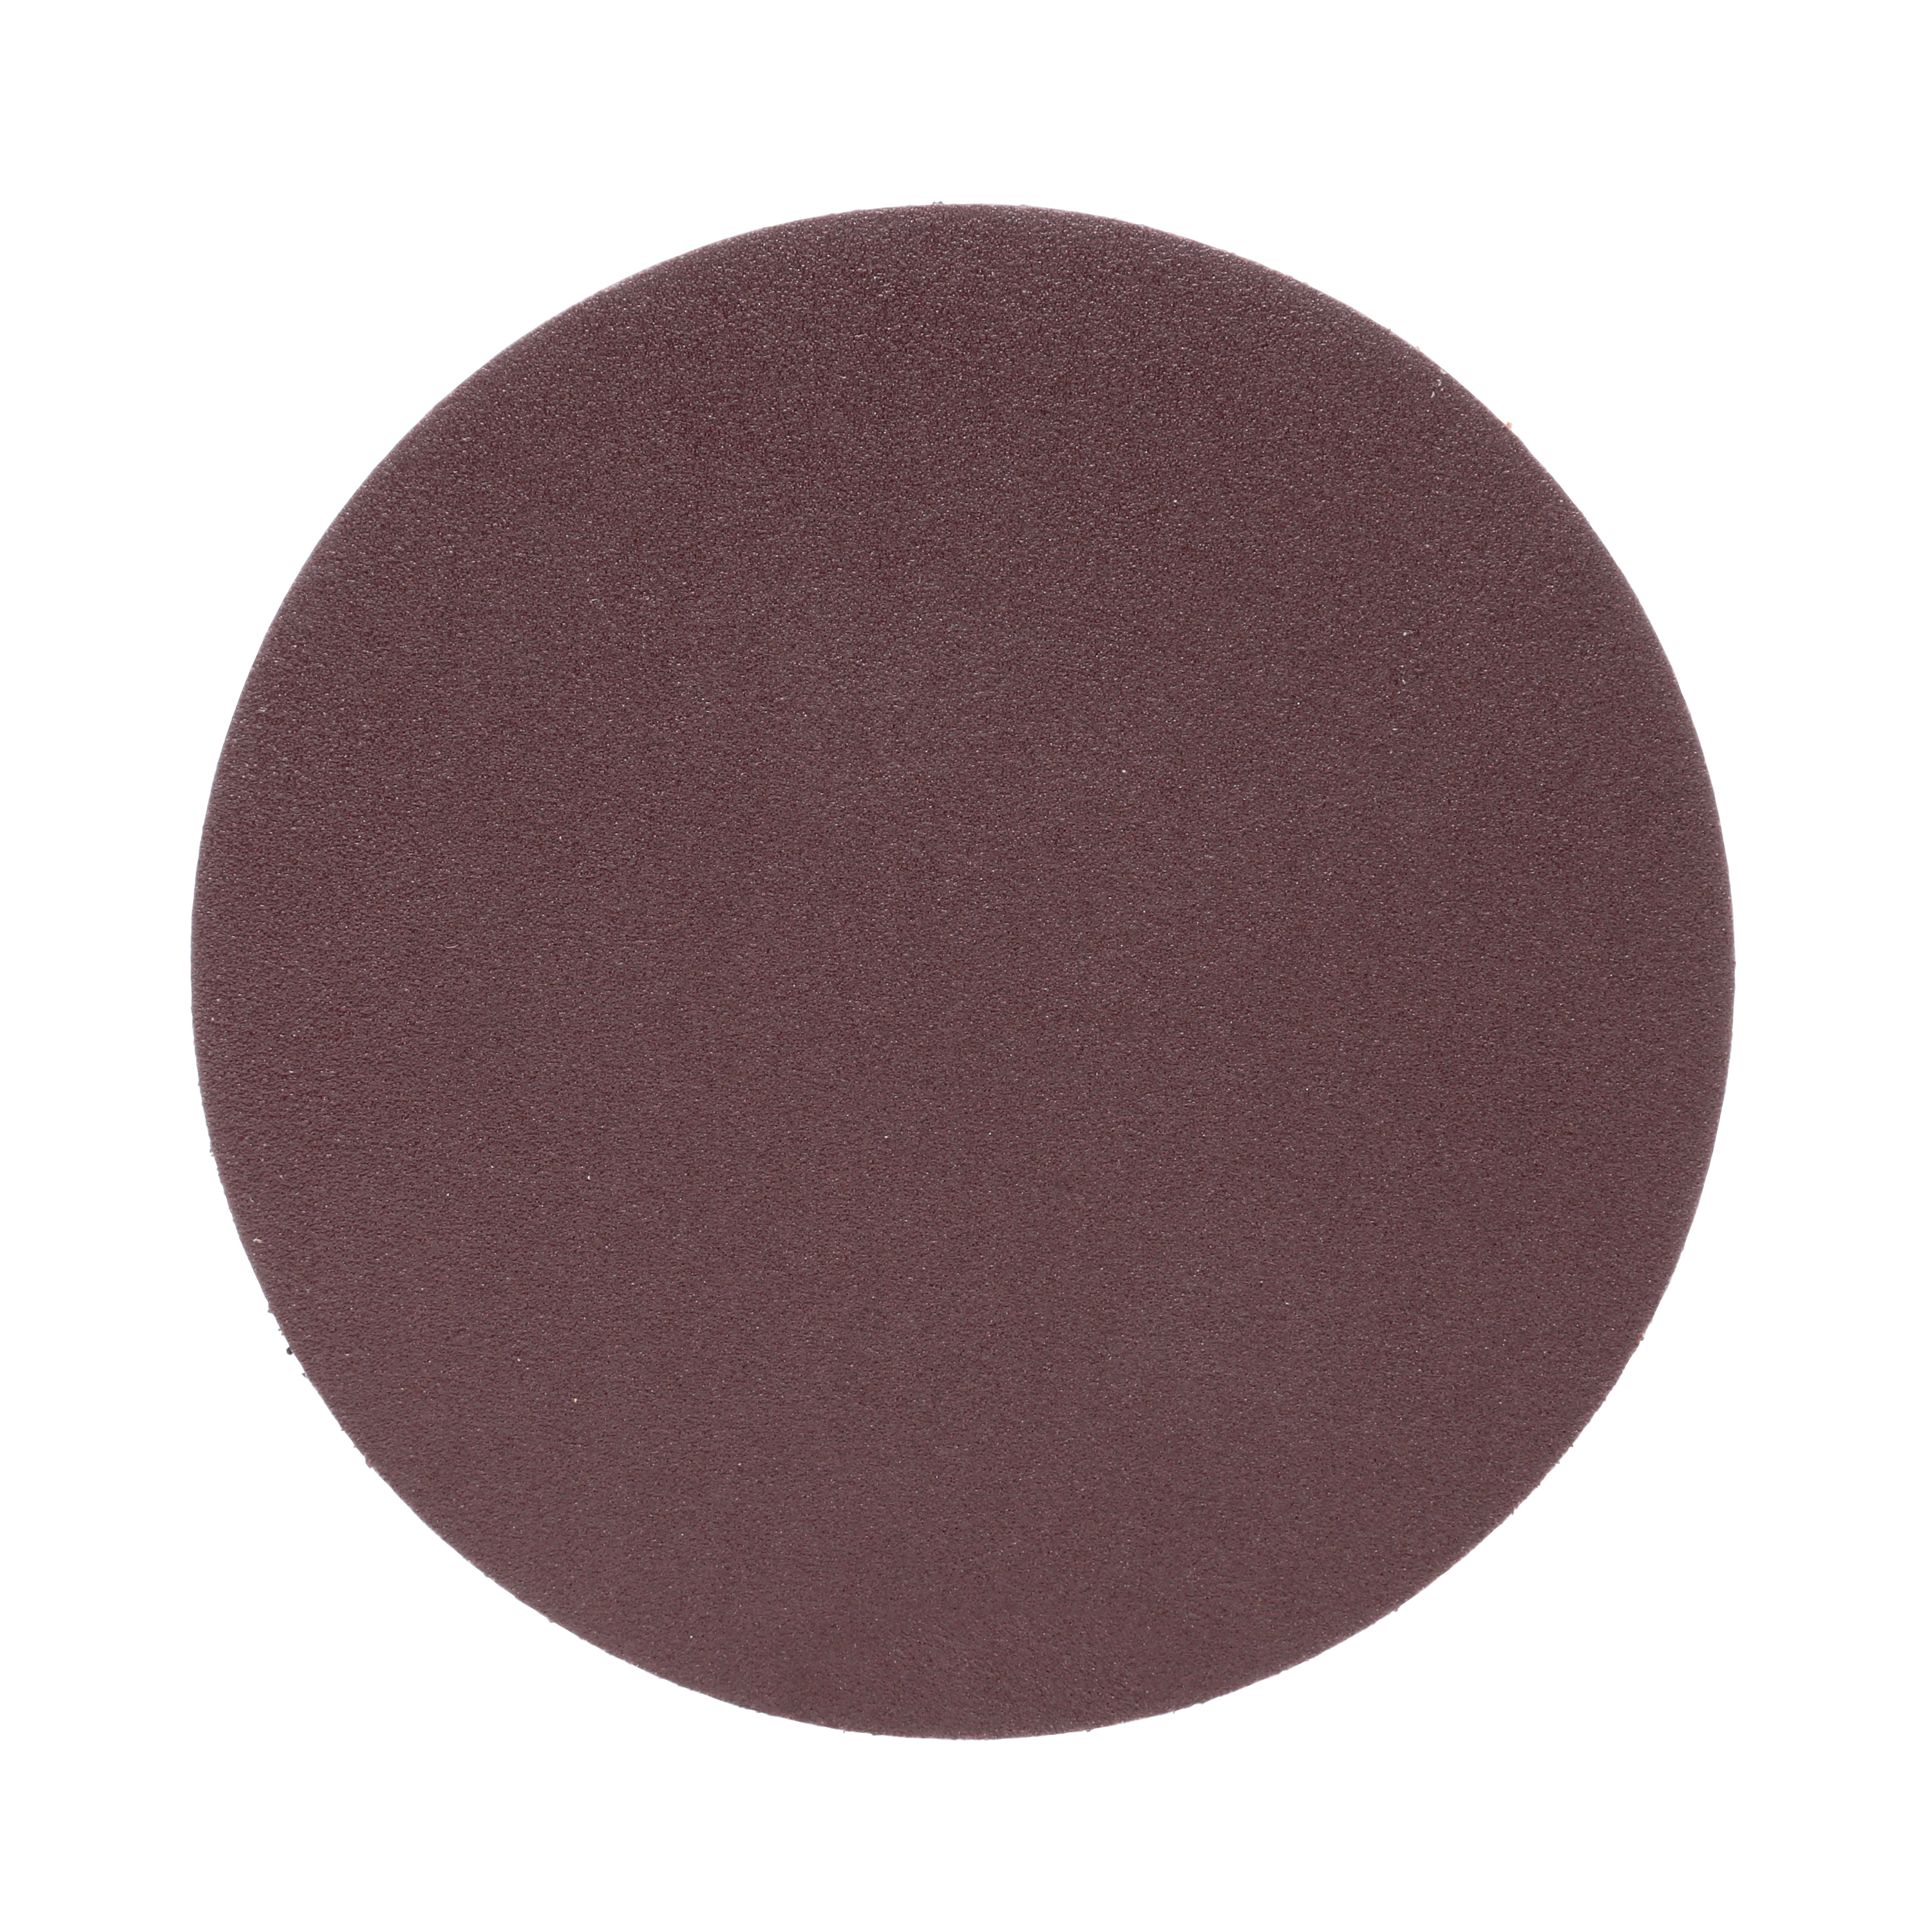 3M™ 051144-21497 Heavy Duty PSA Close Coated Abrasive Disc, 6 in Dia, P120 Grit, Fine Grade, Aluminum Oxide Abrasive, Cloth Backing